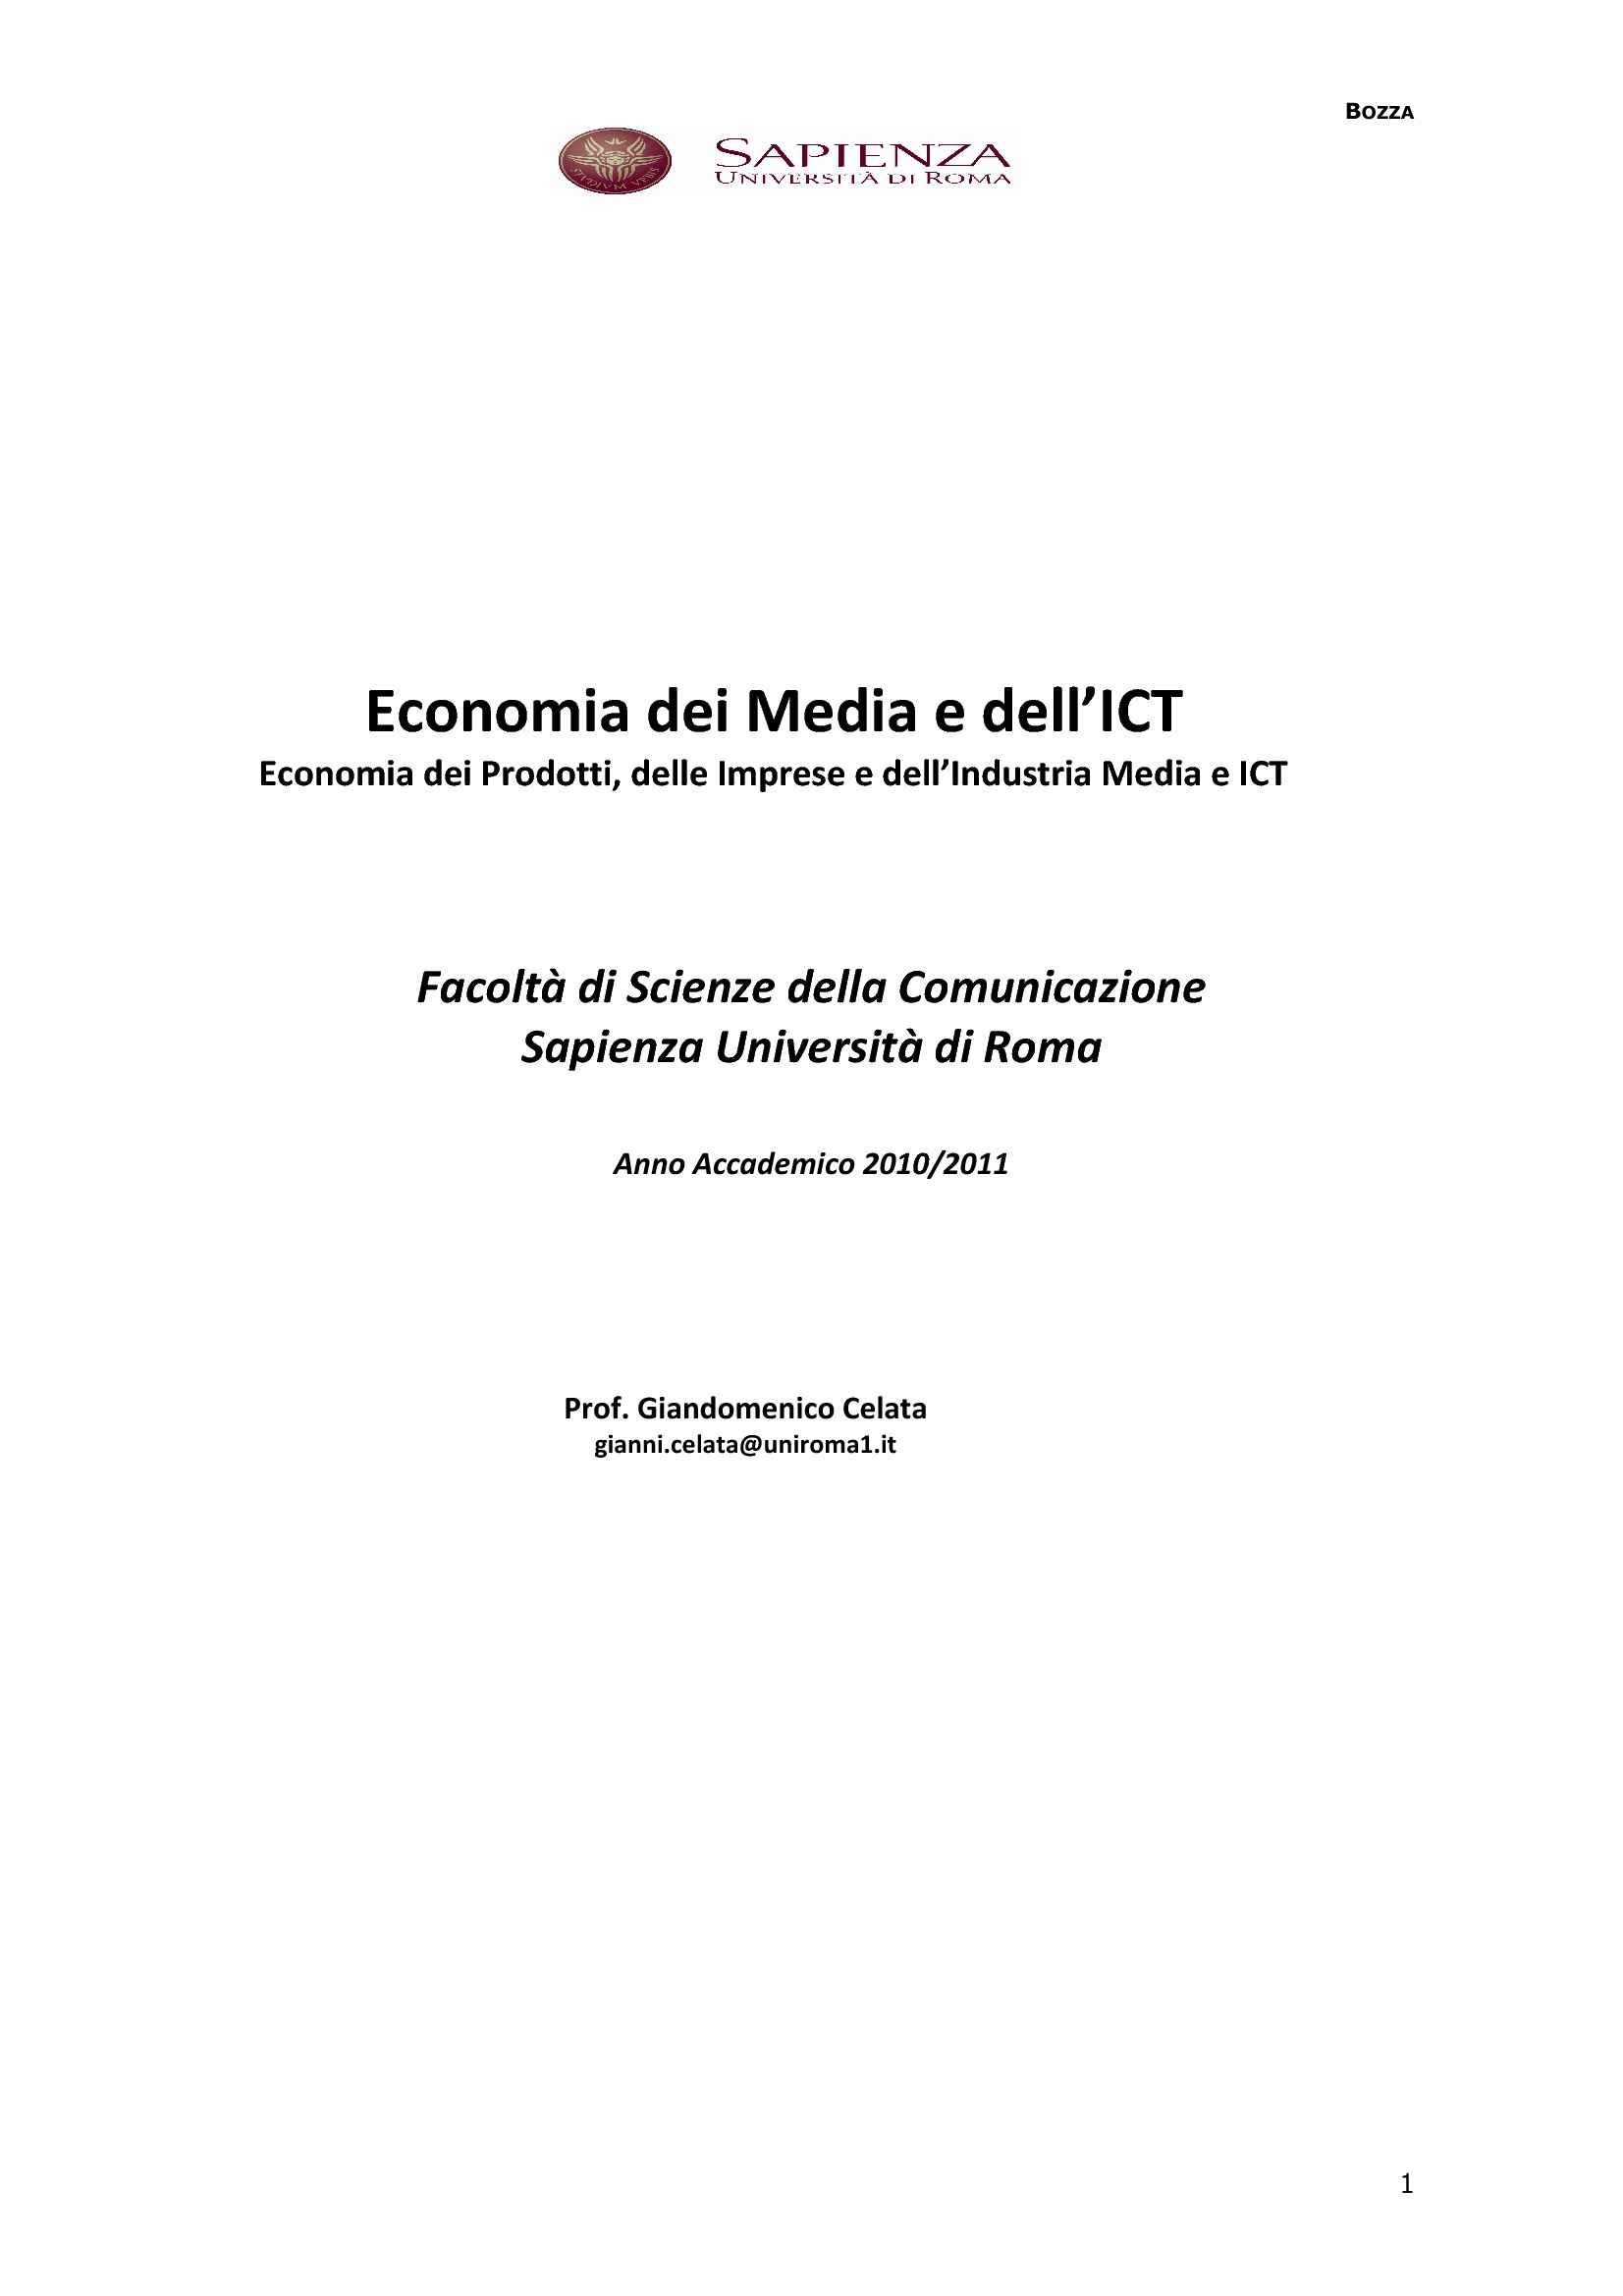 Economia dei media e dell'ICT